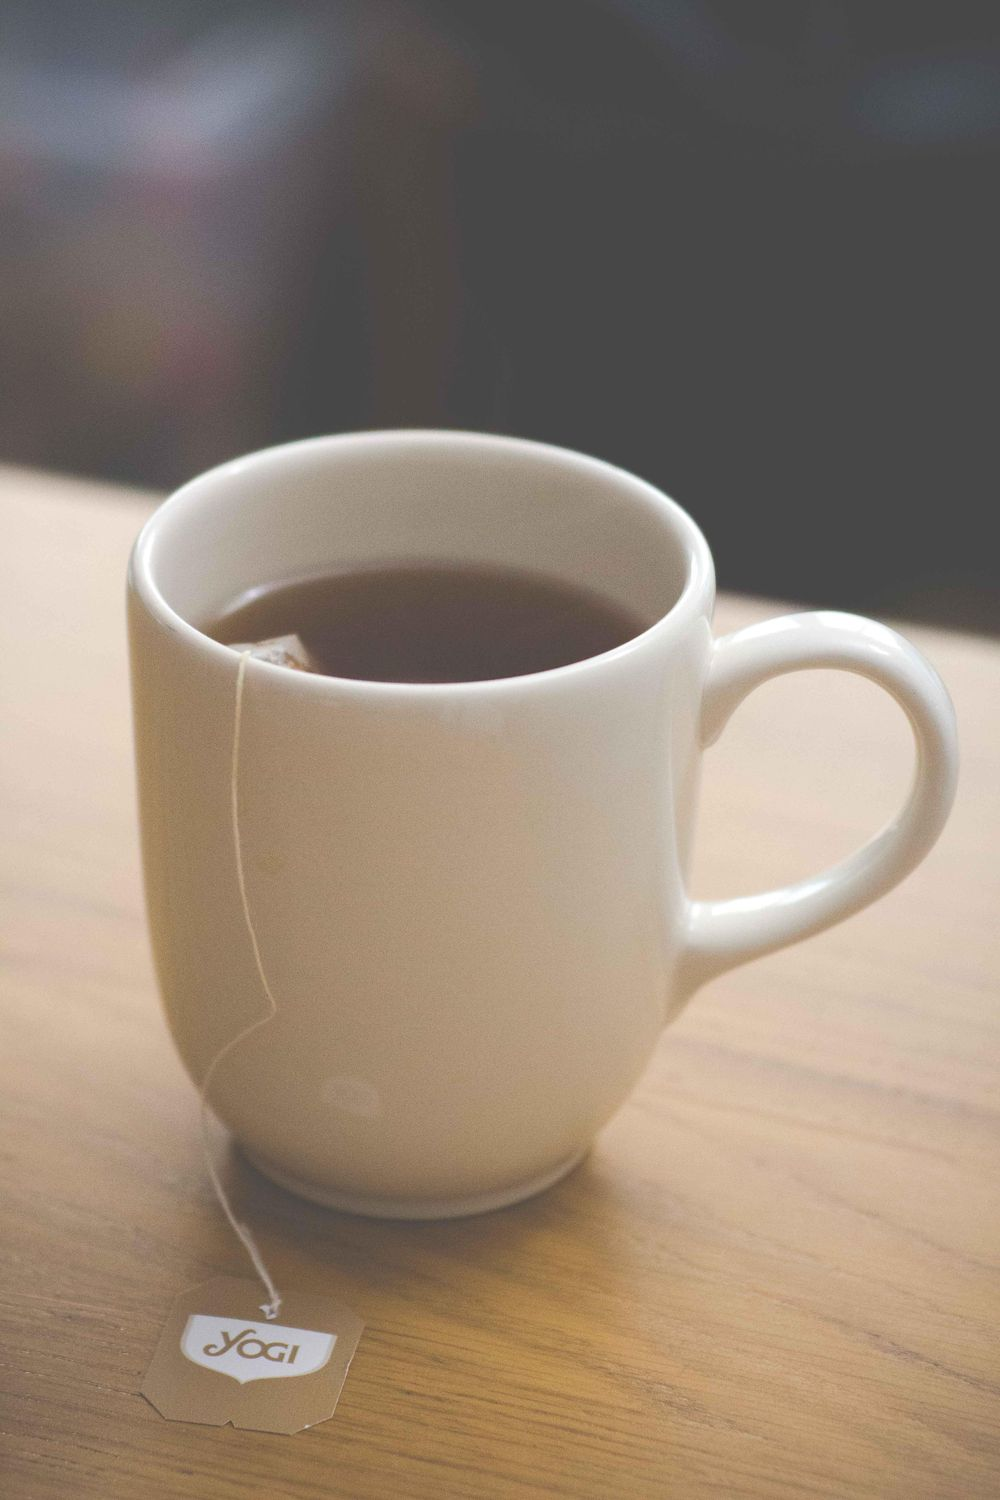 A cup of tea moment - image 2 - student project